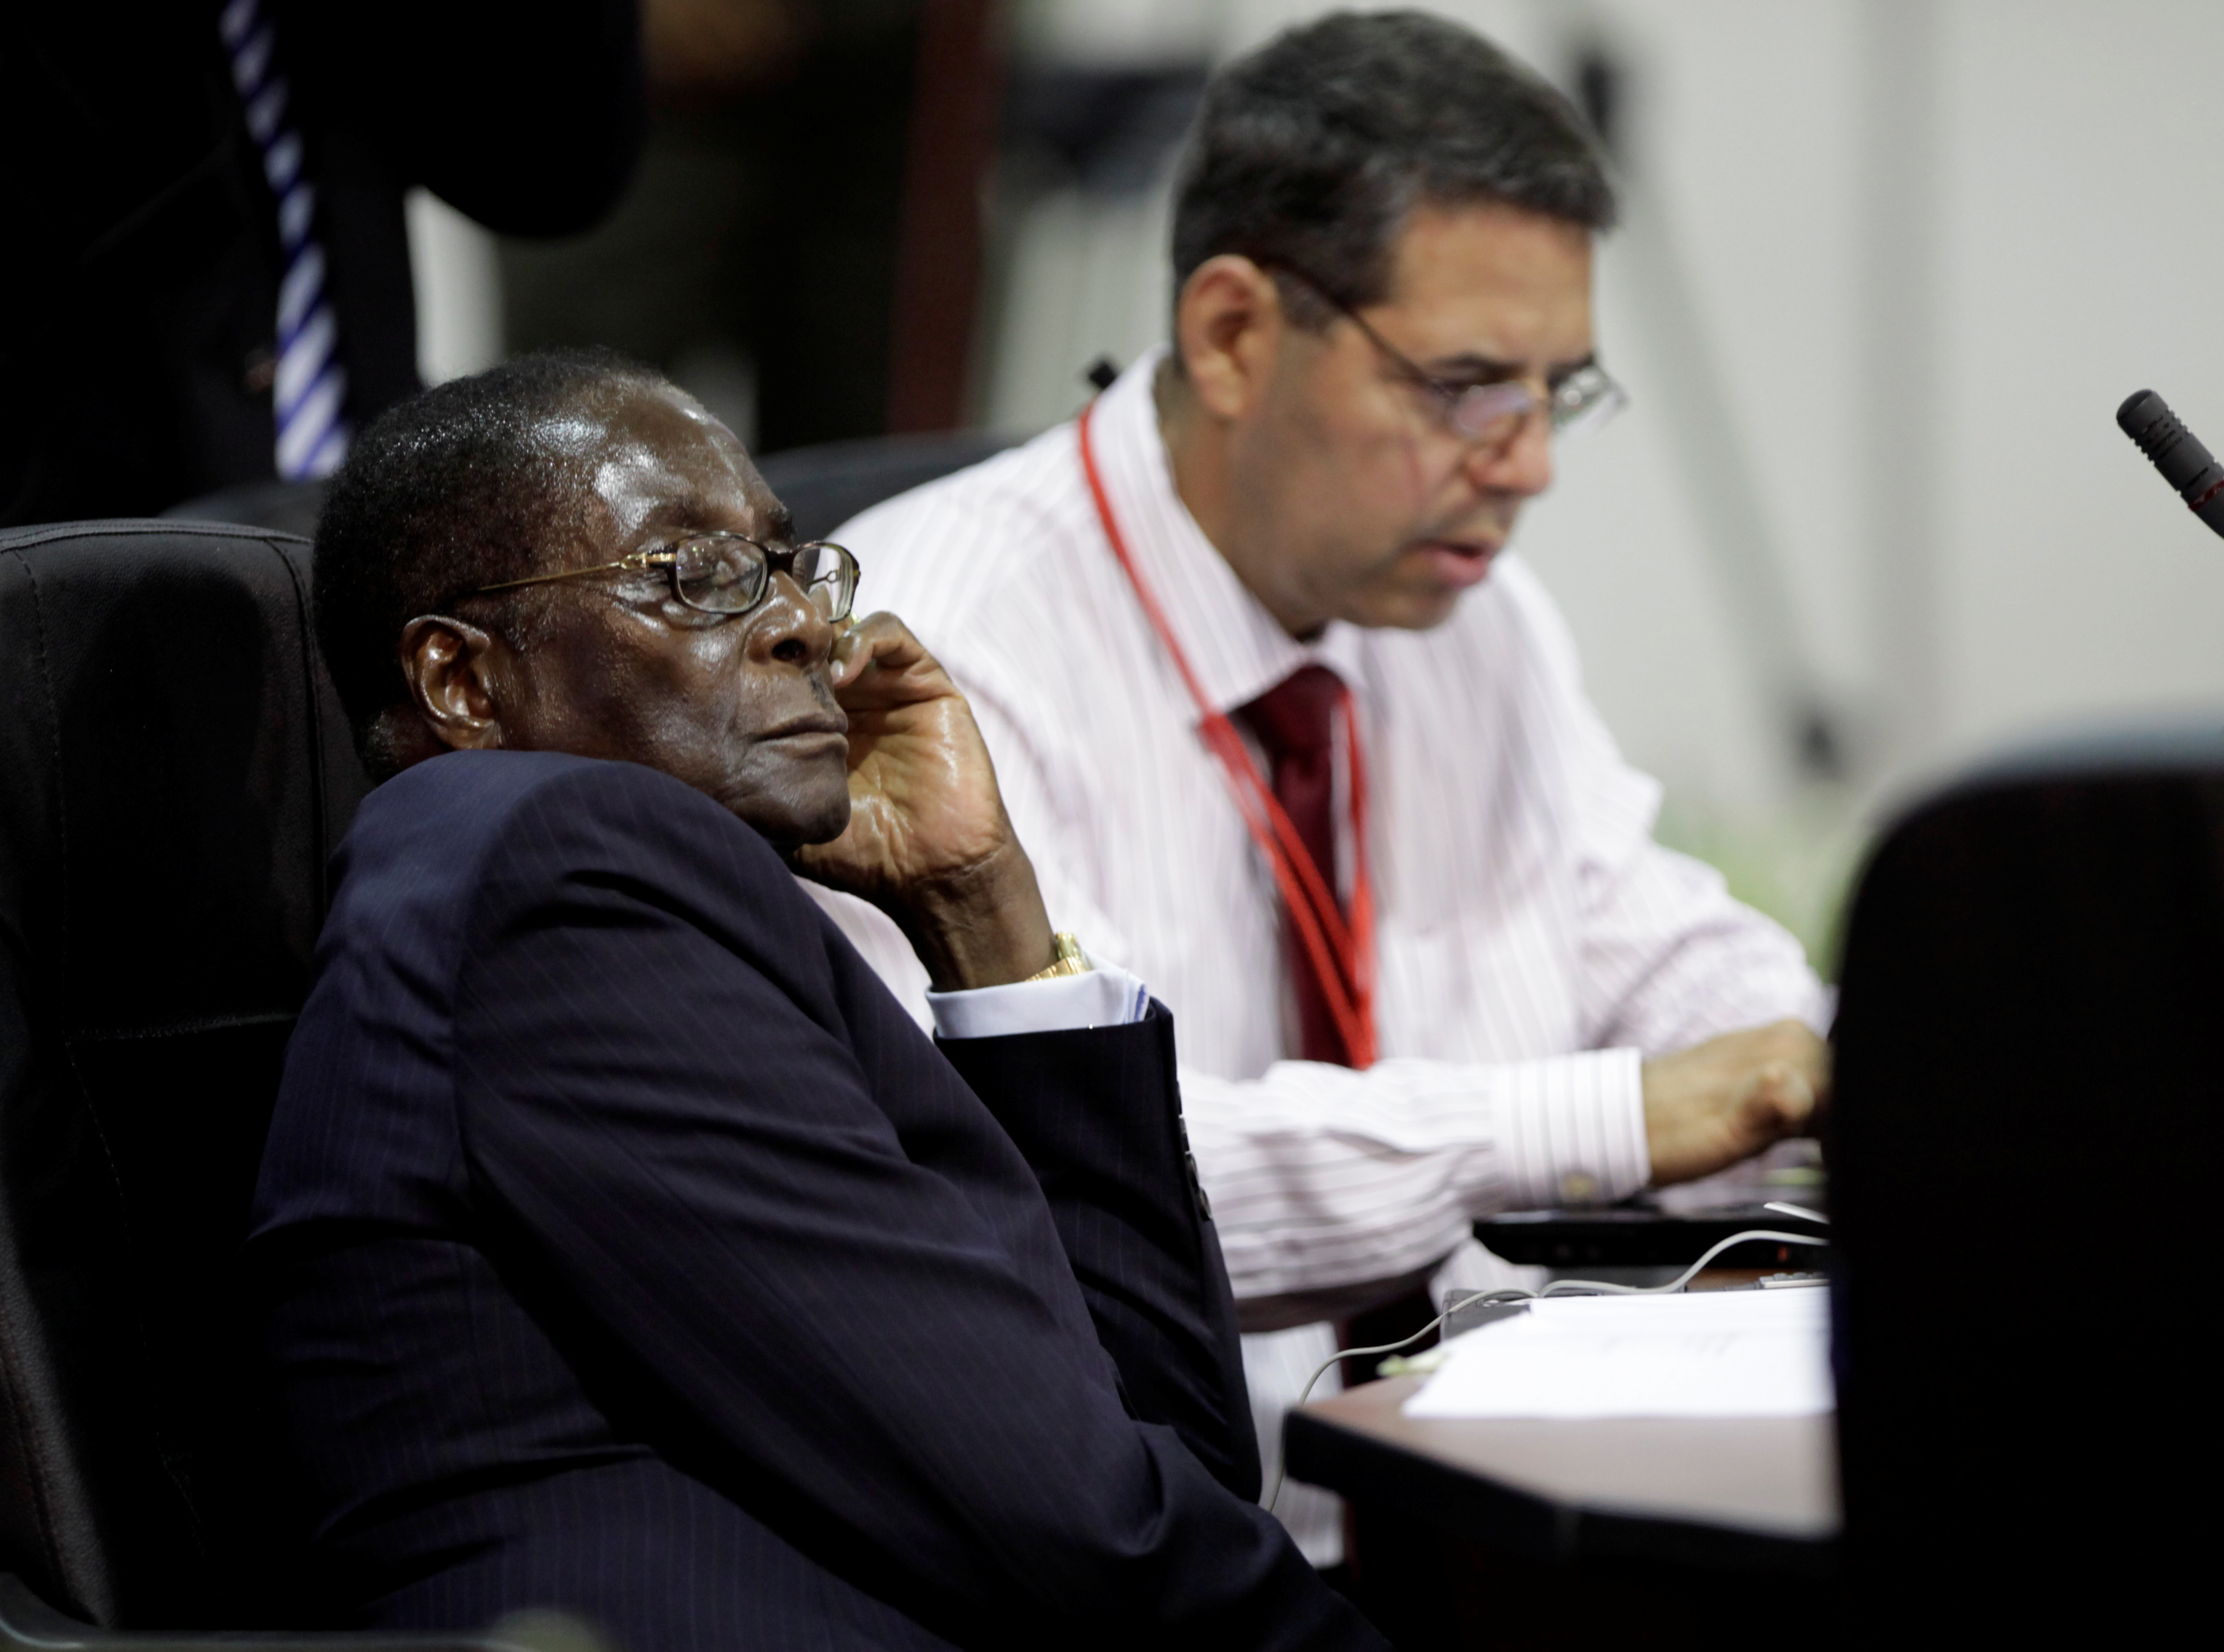 At the Africa and South America Summit in Venezuela, in September 2009.